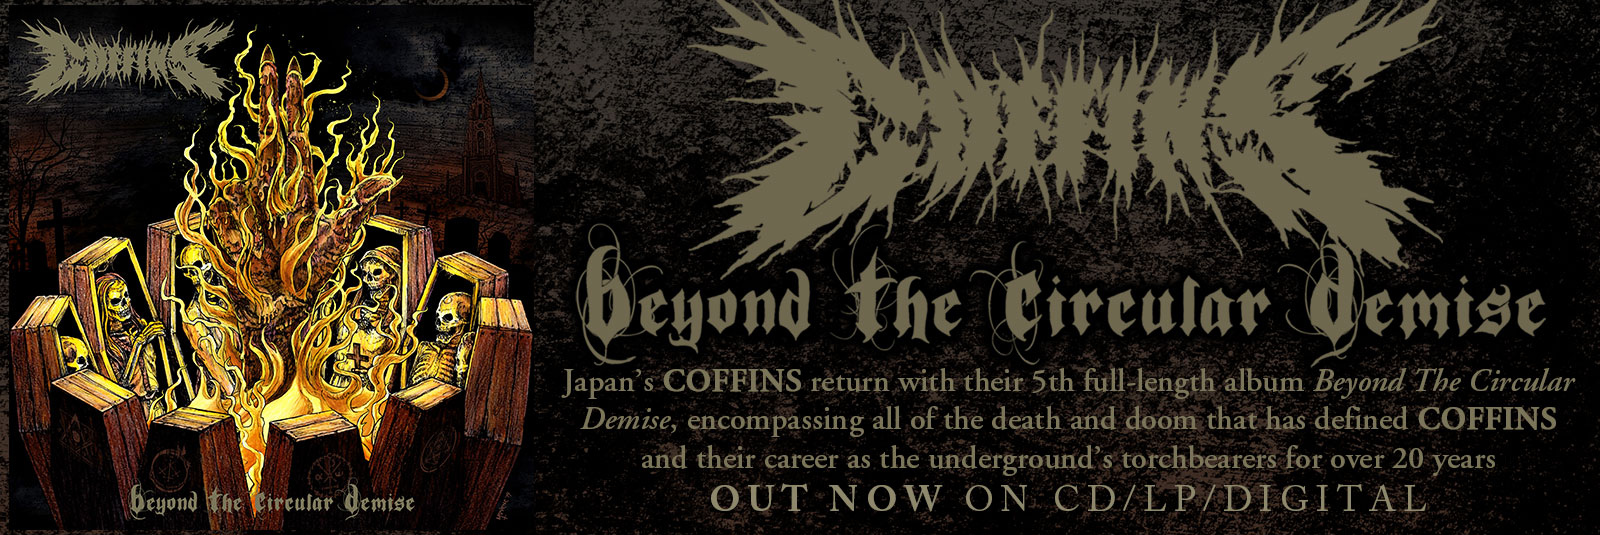 coffins-beyond-the-circular-demise-death-doom-metal-relapse-out-now